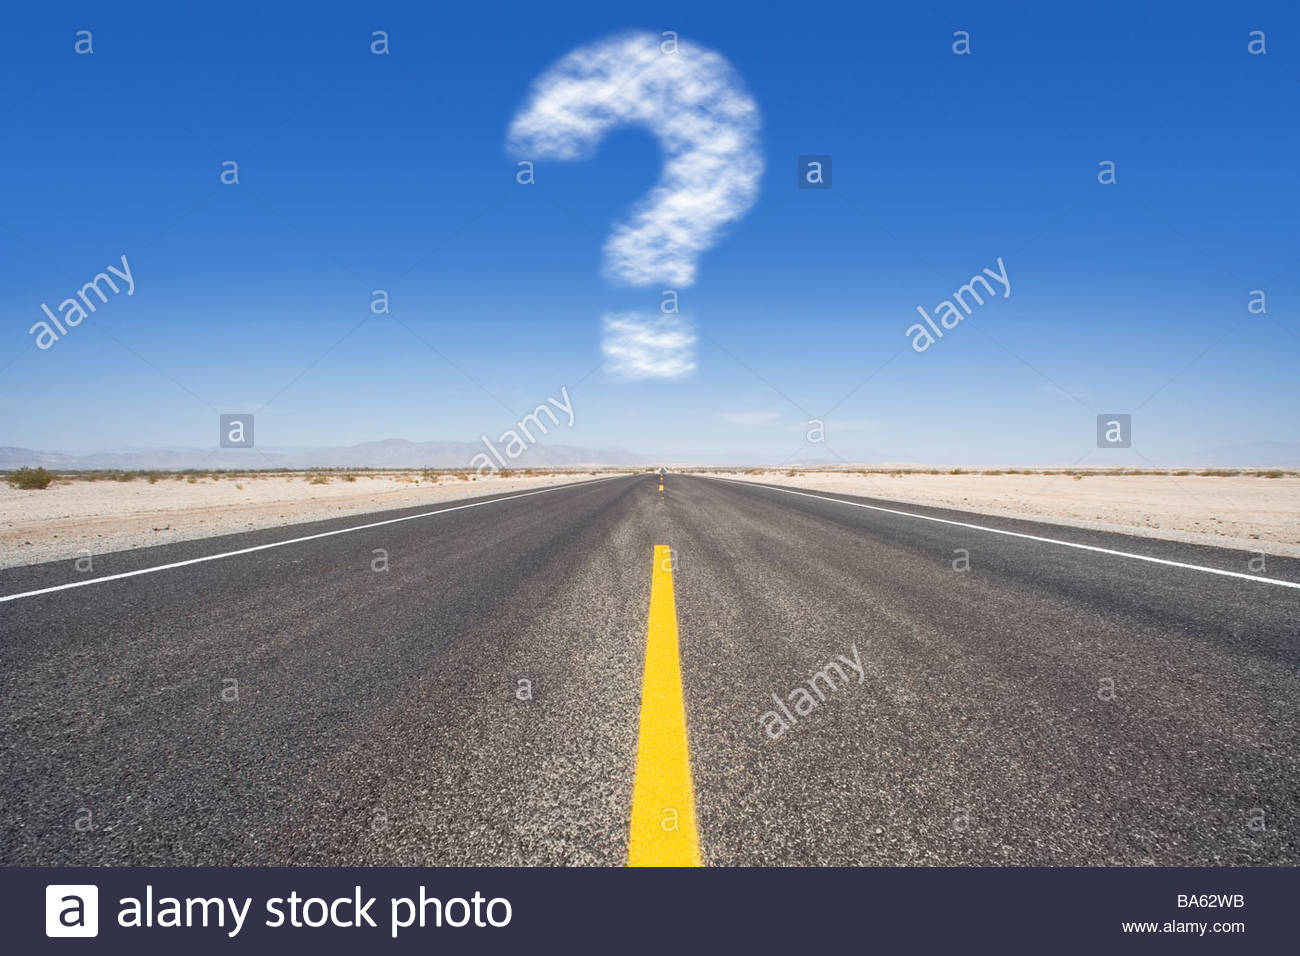 Question mark cloud hovering over remote desert road - Stock Image